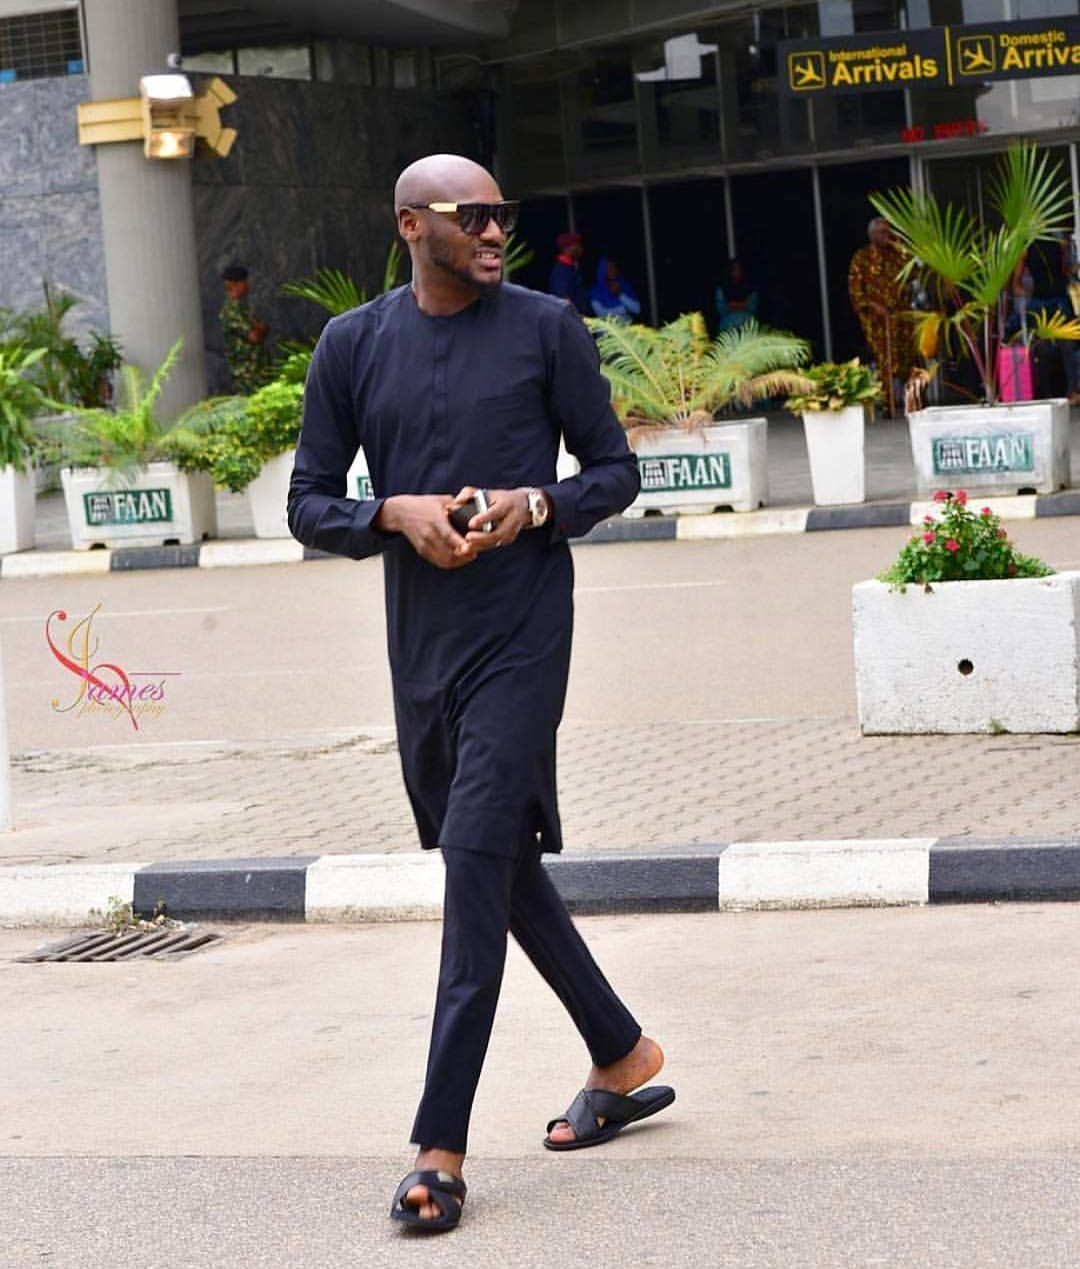 latest native styles for guys 2016, latest native styles for guys 2017, native design for guys, nigerian mens wear, nigerian native attire styles, senator native designs, nigerian men's traditional fashion styles, native wears for guys 2018, native styles for male, ankara/styles/for men 2018, latest senator design 2018, native style for male, nigerian native wears pictures 2017, native wears for guys, nigerian native wears pictures, styles for native gowns, native styles for guys, latest native design for guys, nigerian female native styles, latest native styles for guys 2018, latest senator designs, senator suit designs, latest senator design 2017, senators suit, senator fashion style, senator wears in nigeria, nigerian men's traditional wears, nigerian fashion designers magazines, nigerian traditional wear designs, nigerian clothing for men, nigerian men's fashion magazine, nigerian fashion magazines photos, nigerian fashion magazine pictures